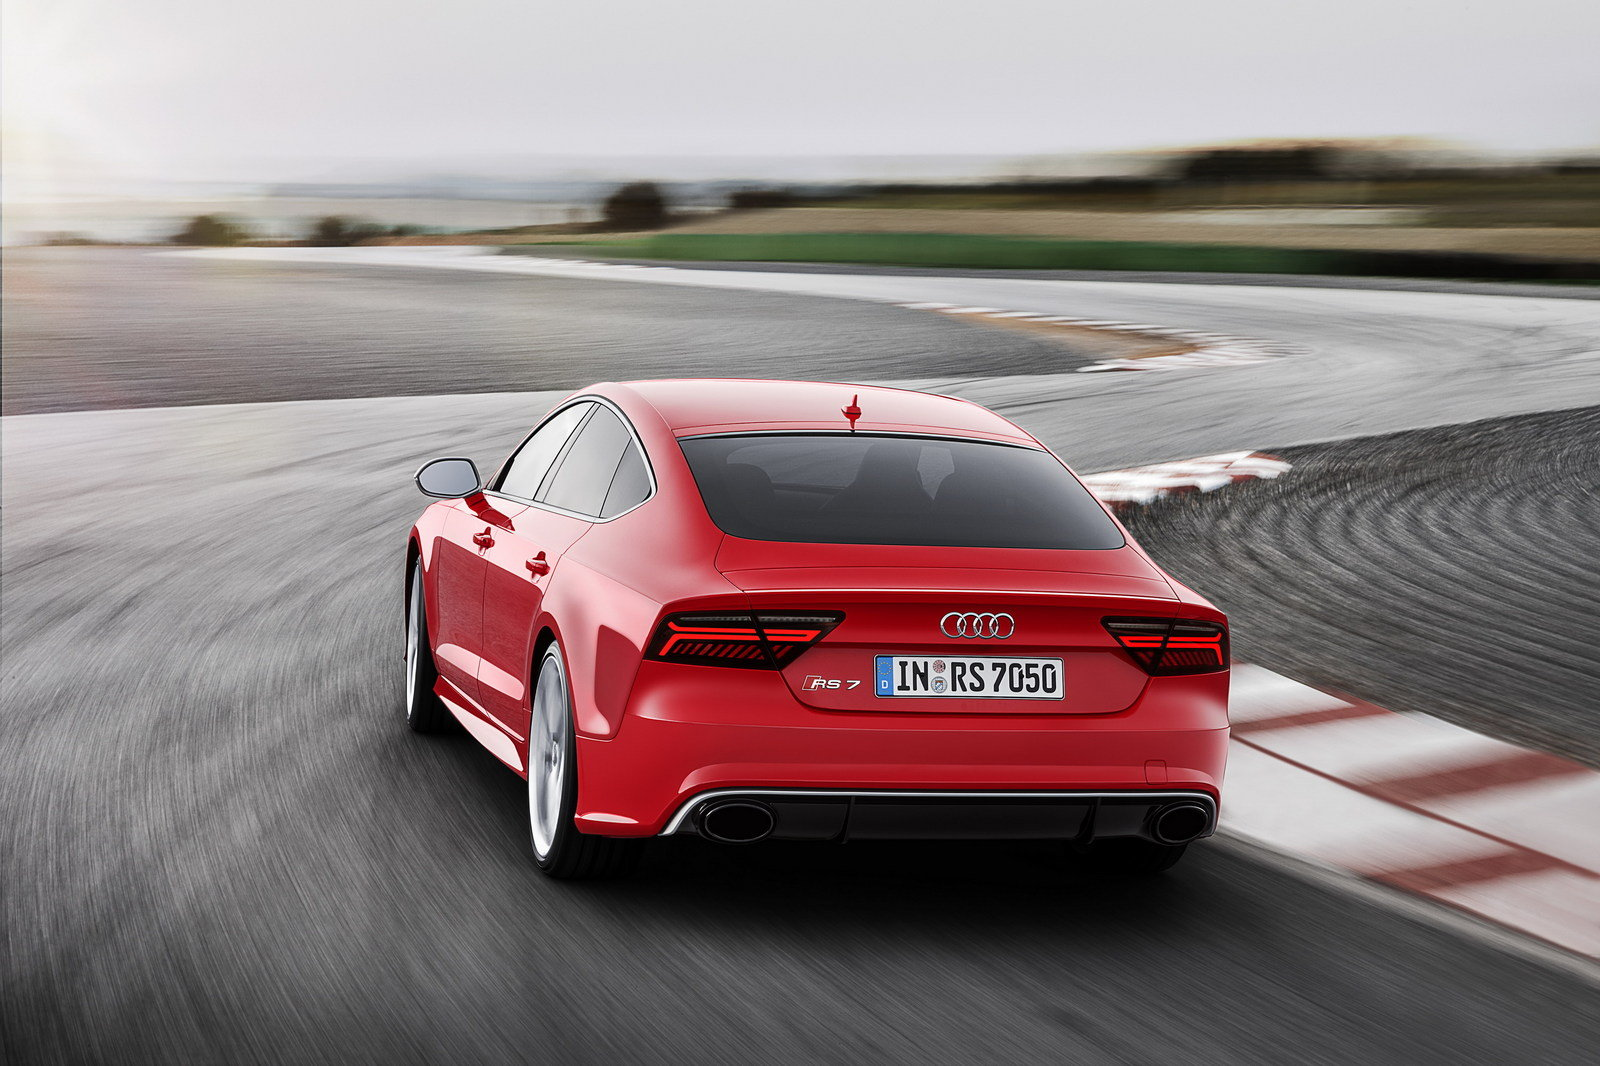 2015 2016 audi rs7 picture 554399 car review top speed. Black Bedroom Furniture Sets. Home Design Ideas